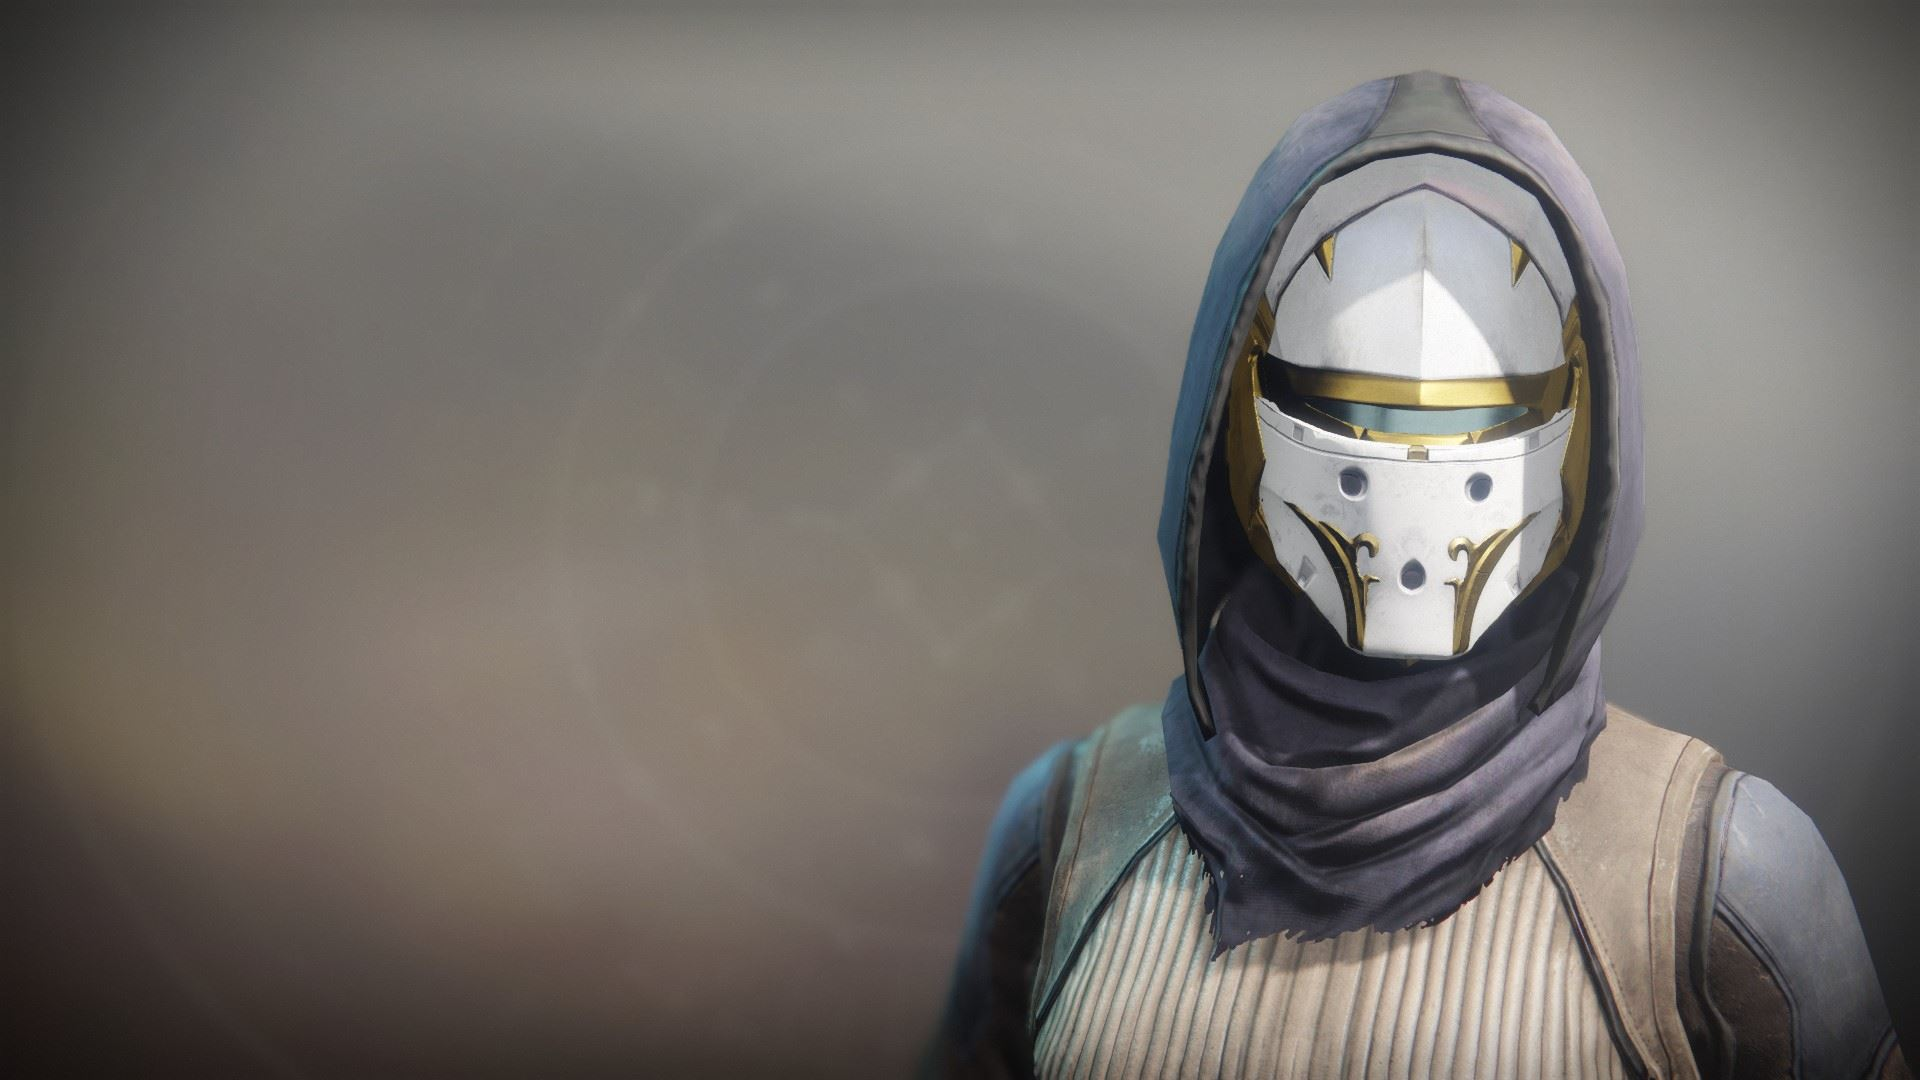 An in-game render of the Solstice Mask (Resplendent).